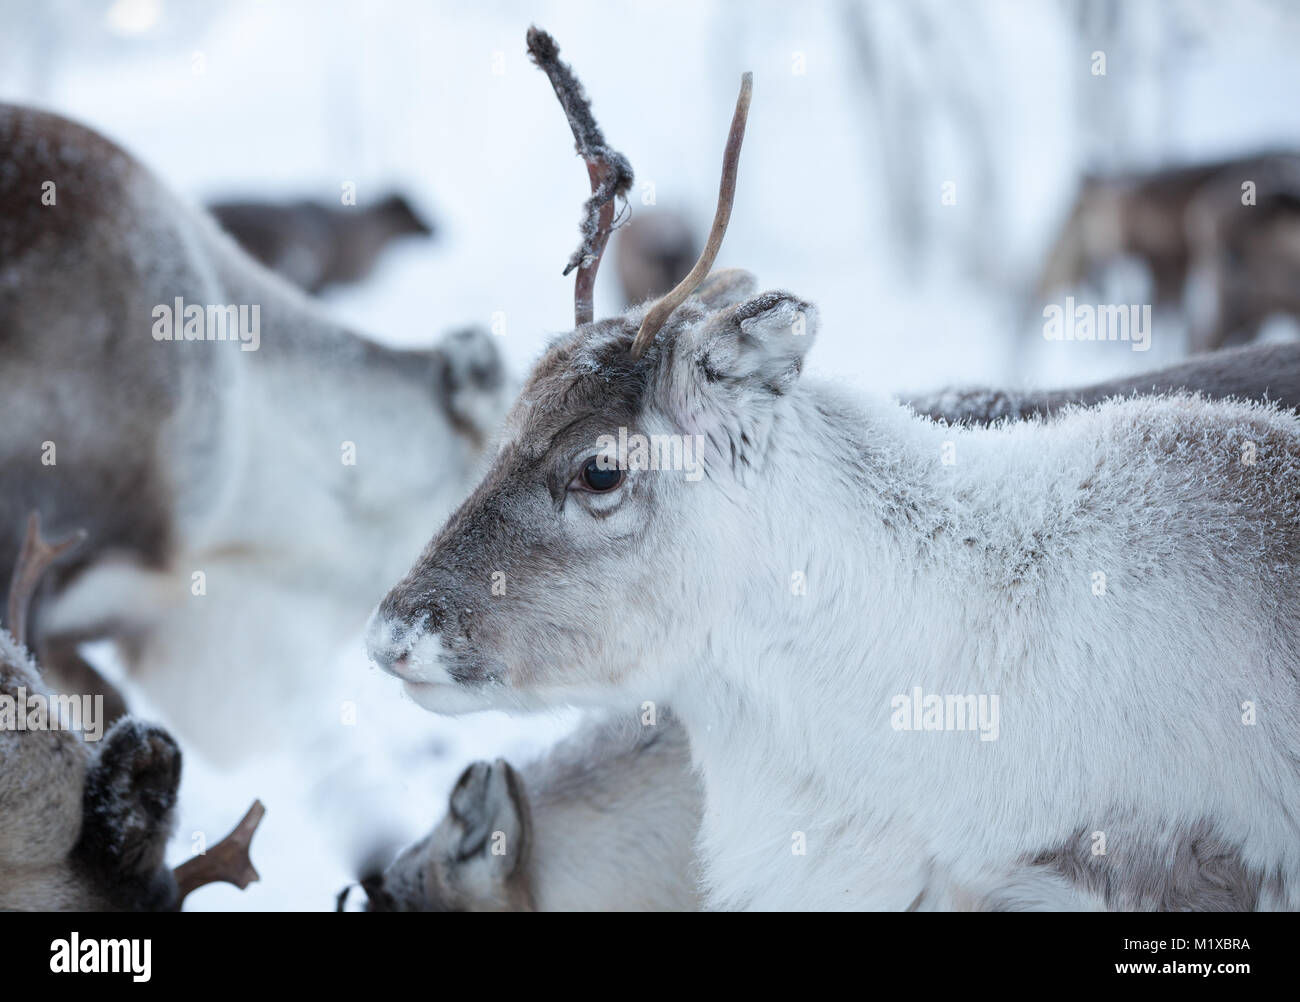 Reindeer youngster together with the family - Stock Image